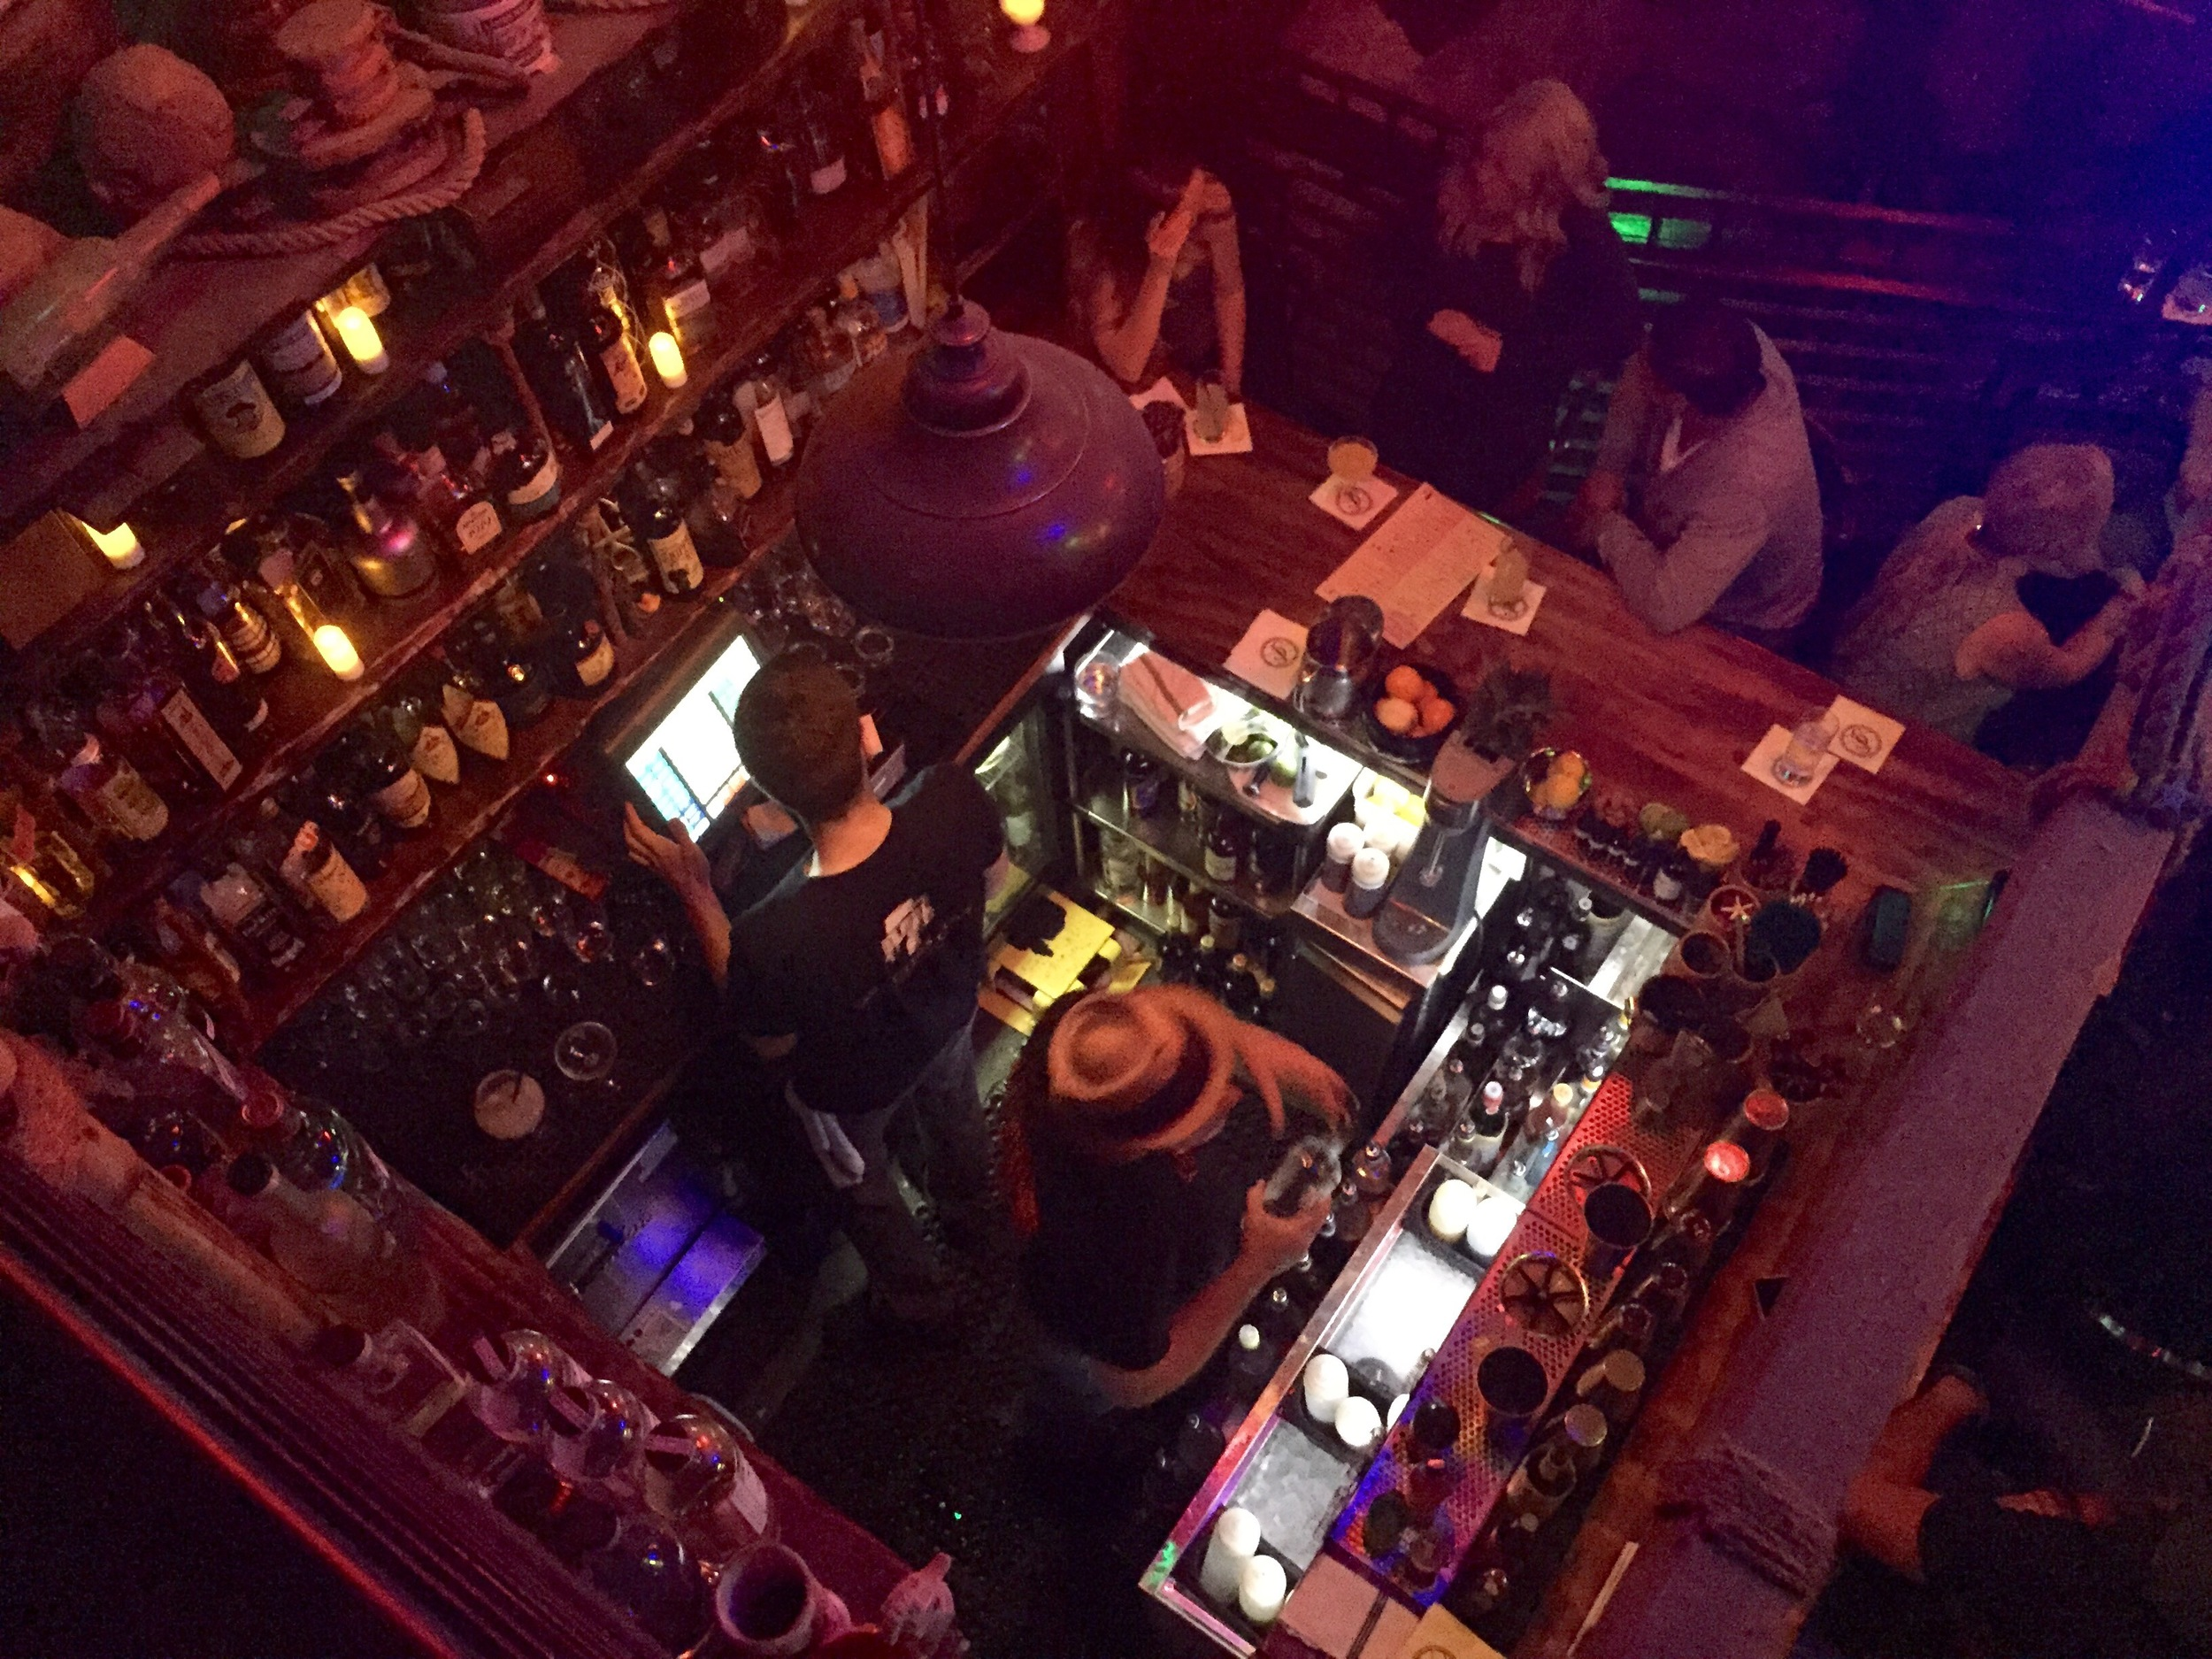 A view of the main bar at Smugglers Cove from the balcony.  Be sure to visit all three levels of this wonderful tiki experience in San Francisco